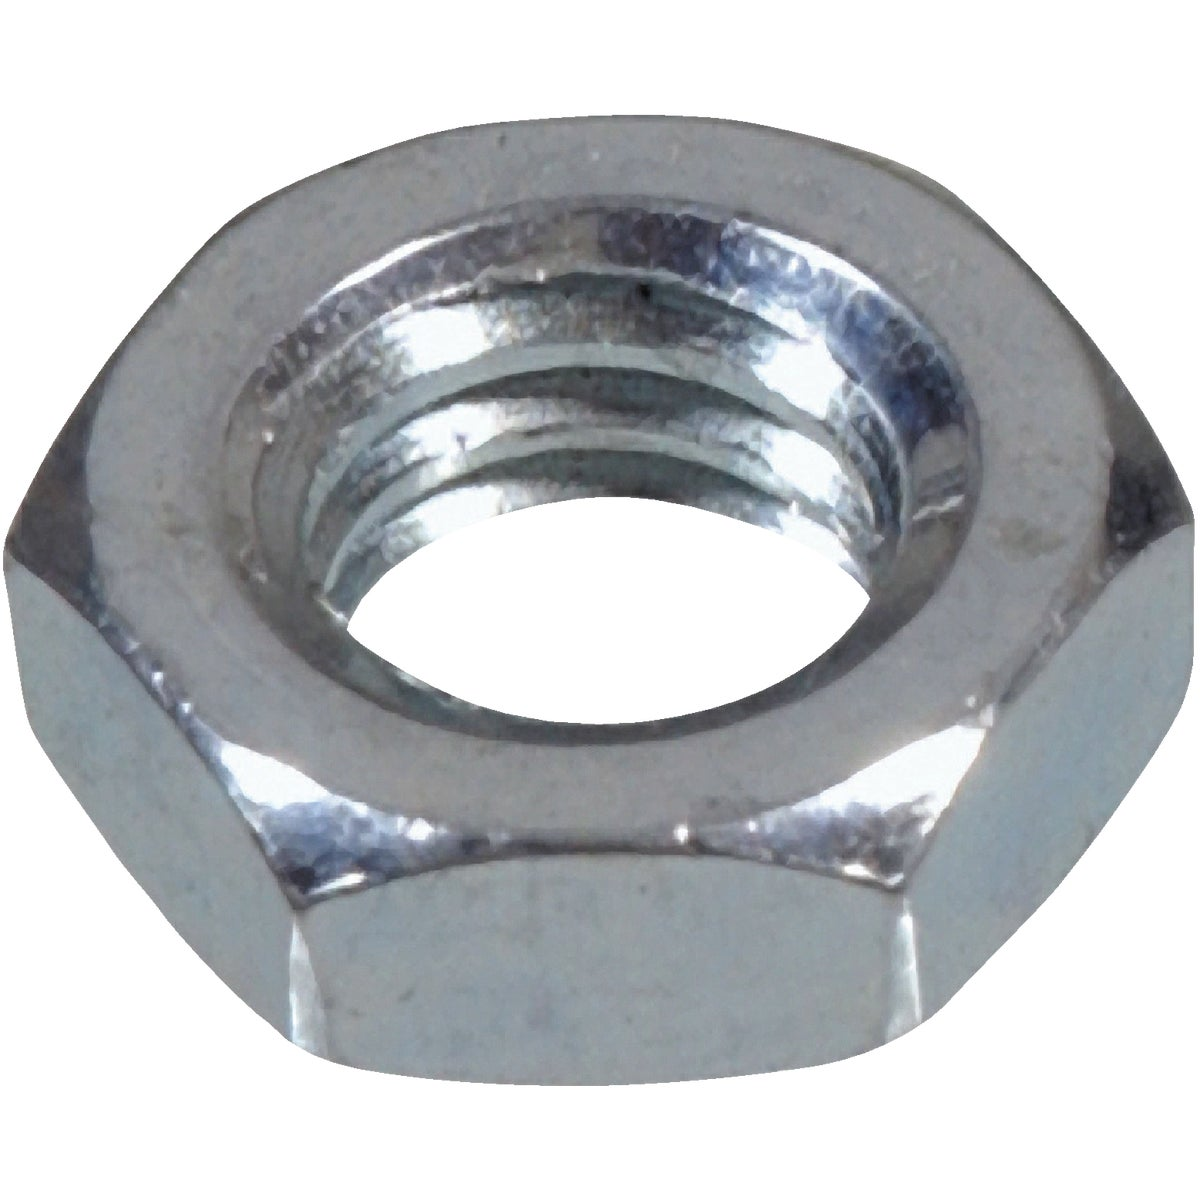 8-32 SS MACH SCREW NUT - 829228 by Hillman Fastener